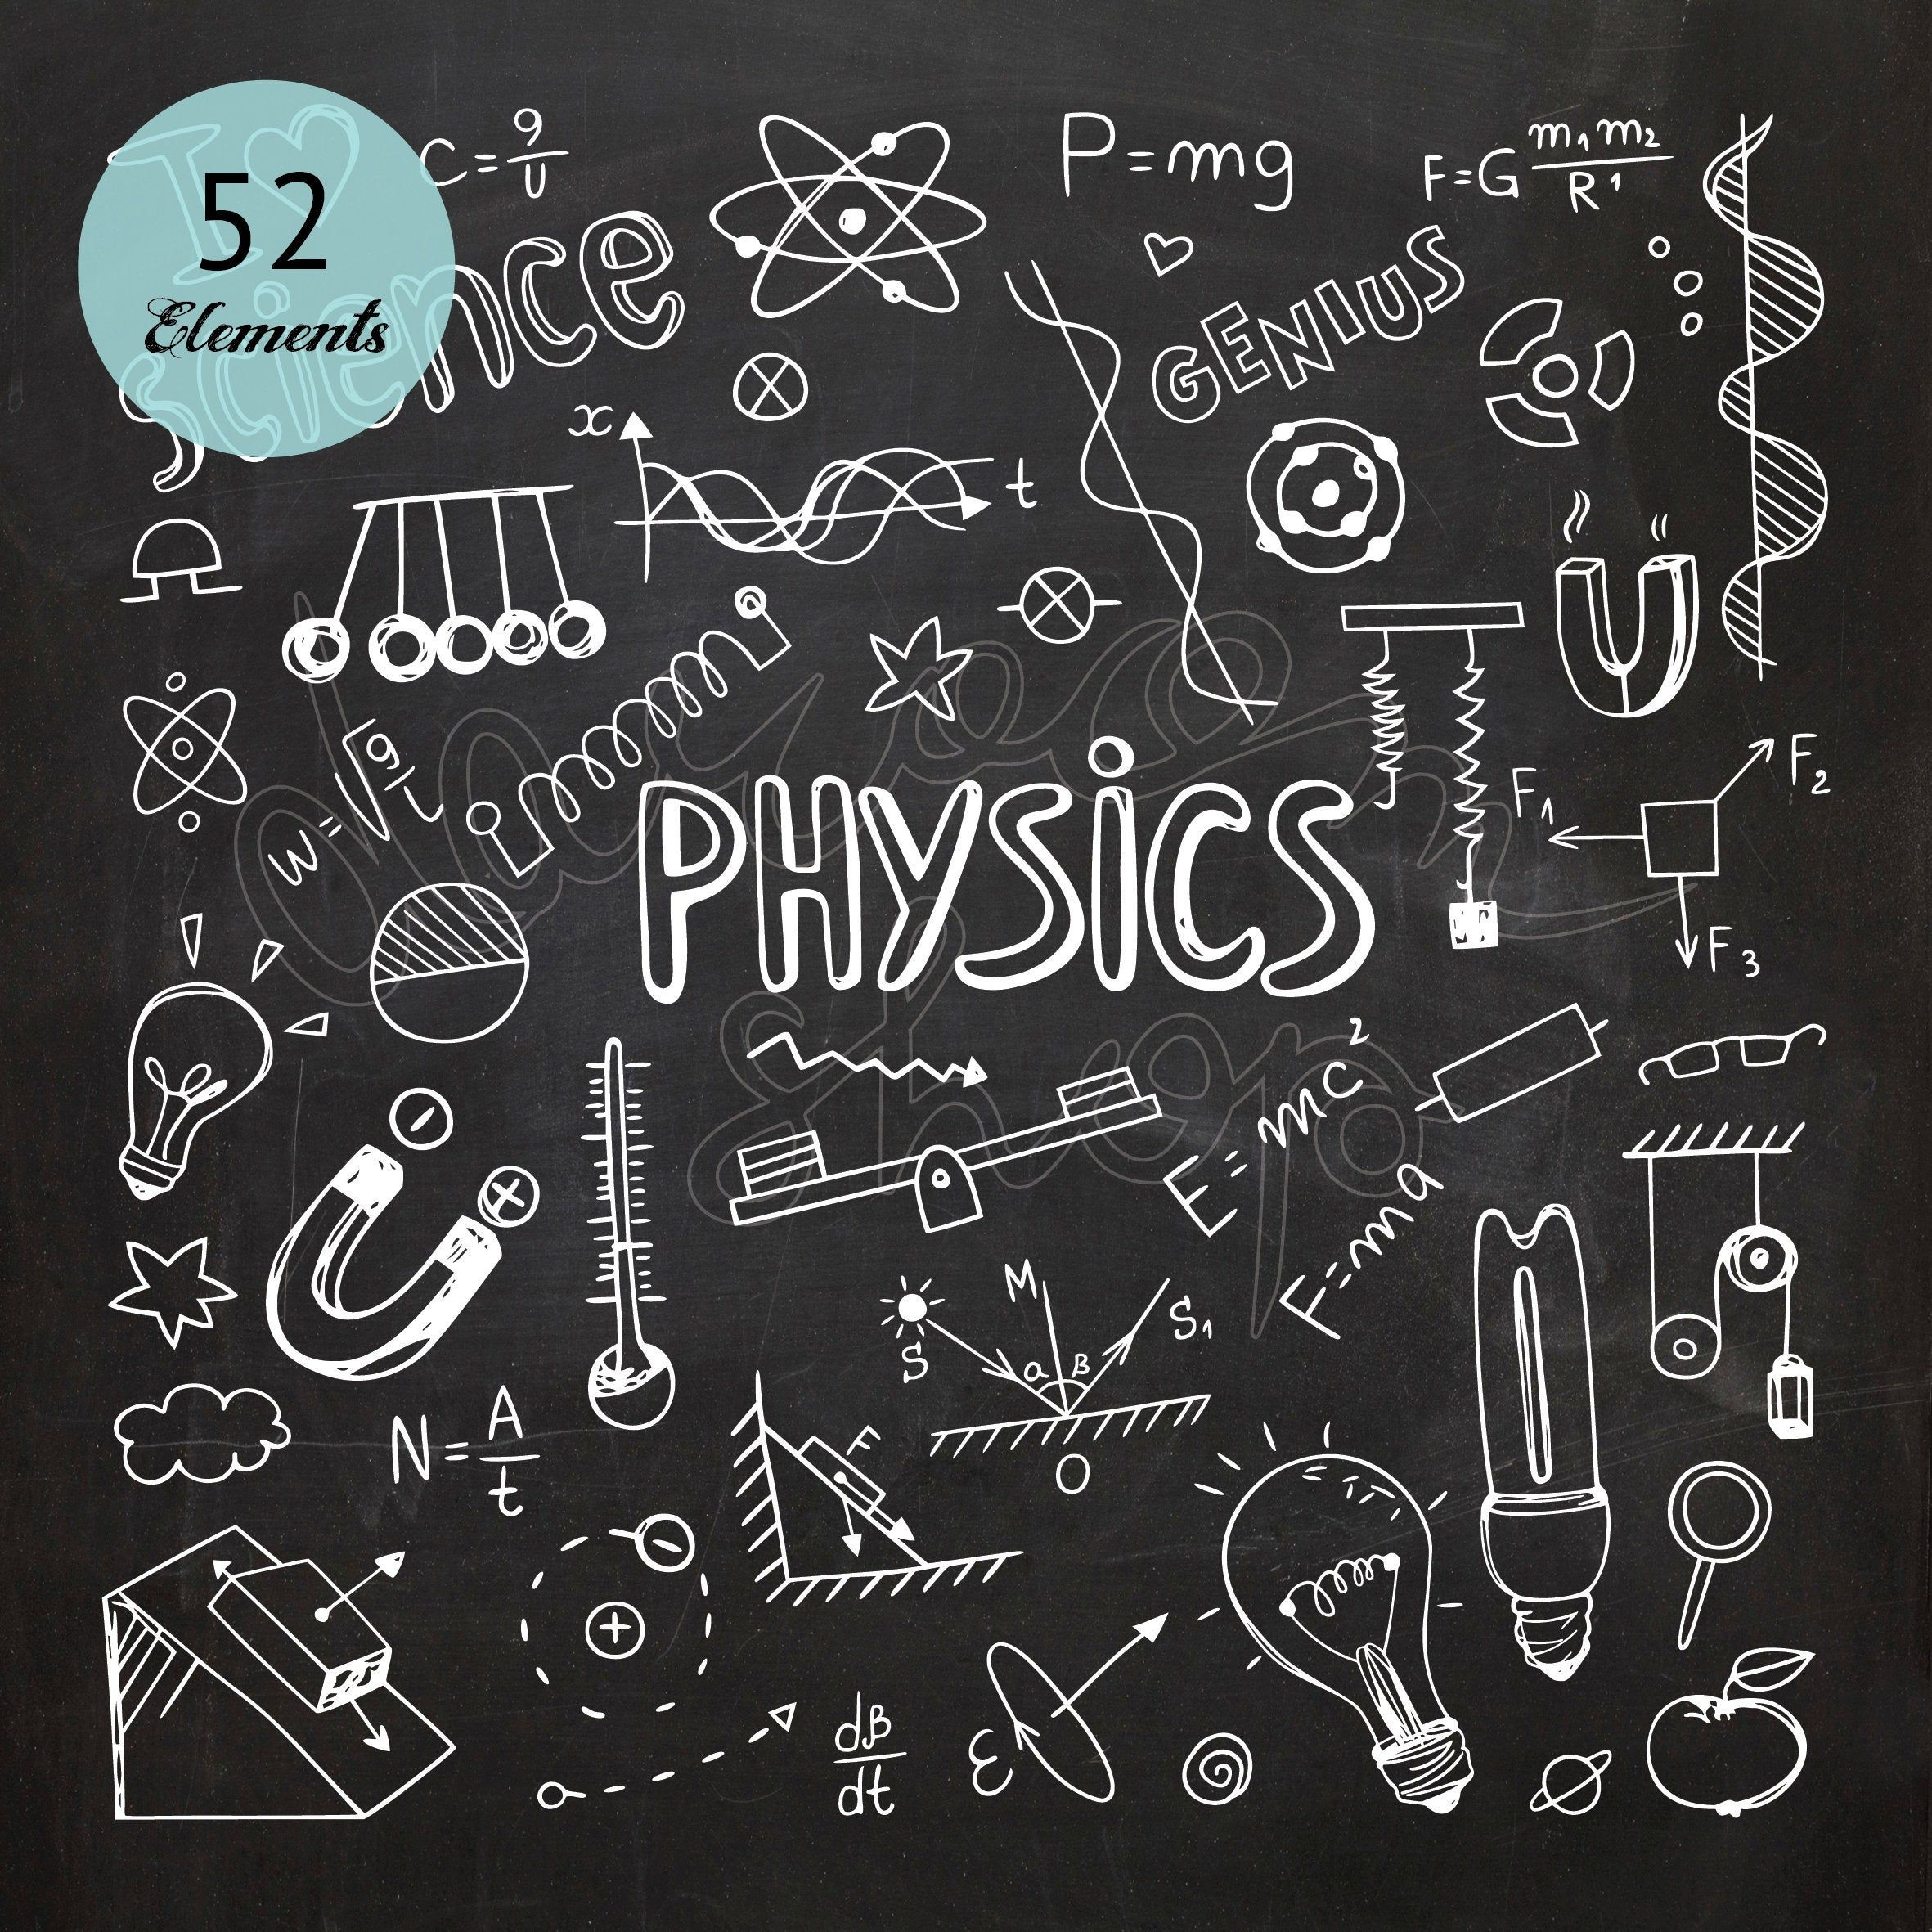 Chalkboard Hand Drawn Physics Clip Art Math Formulas Science Etsy In 2021 Science Symbols How To Draw Hands Chalk Drawings